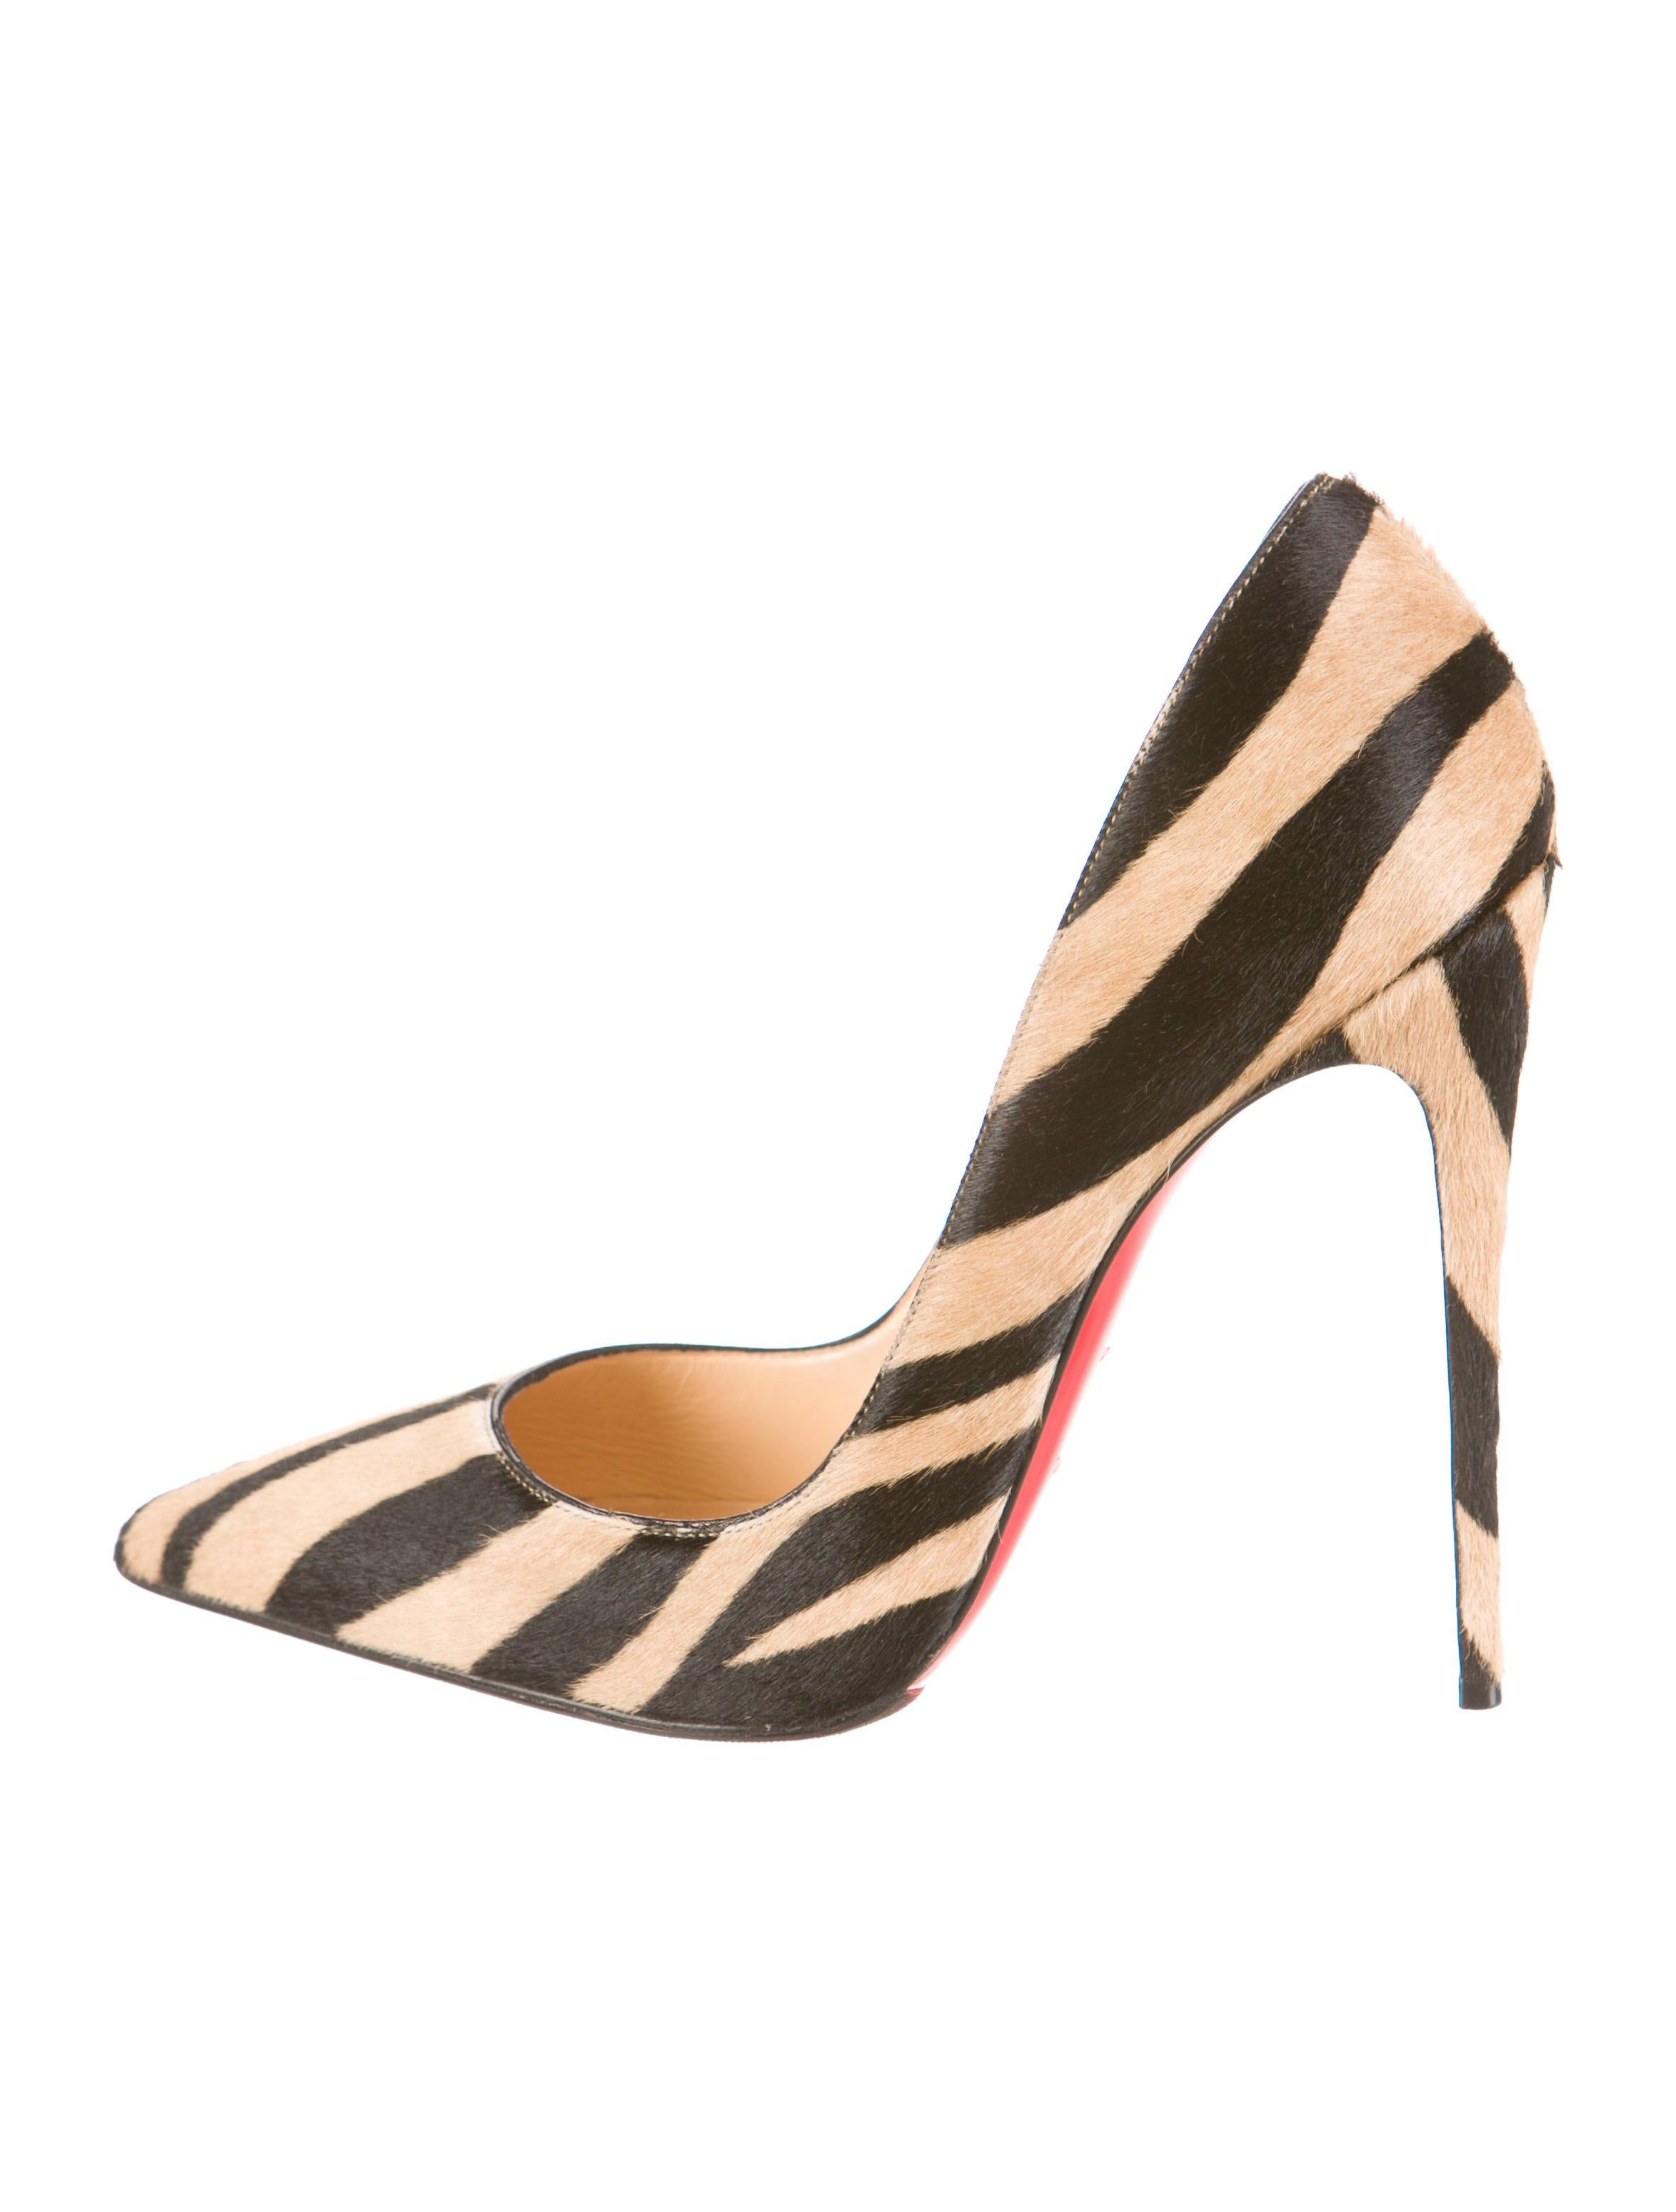 christian lubaton shoes - christian louboutin So Kate pointed-toe pumps Black and tan tiger ...